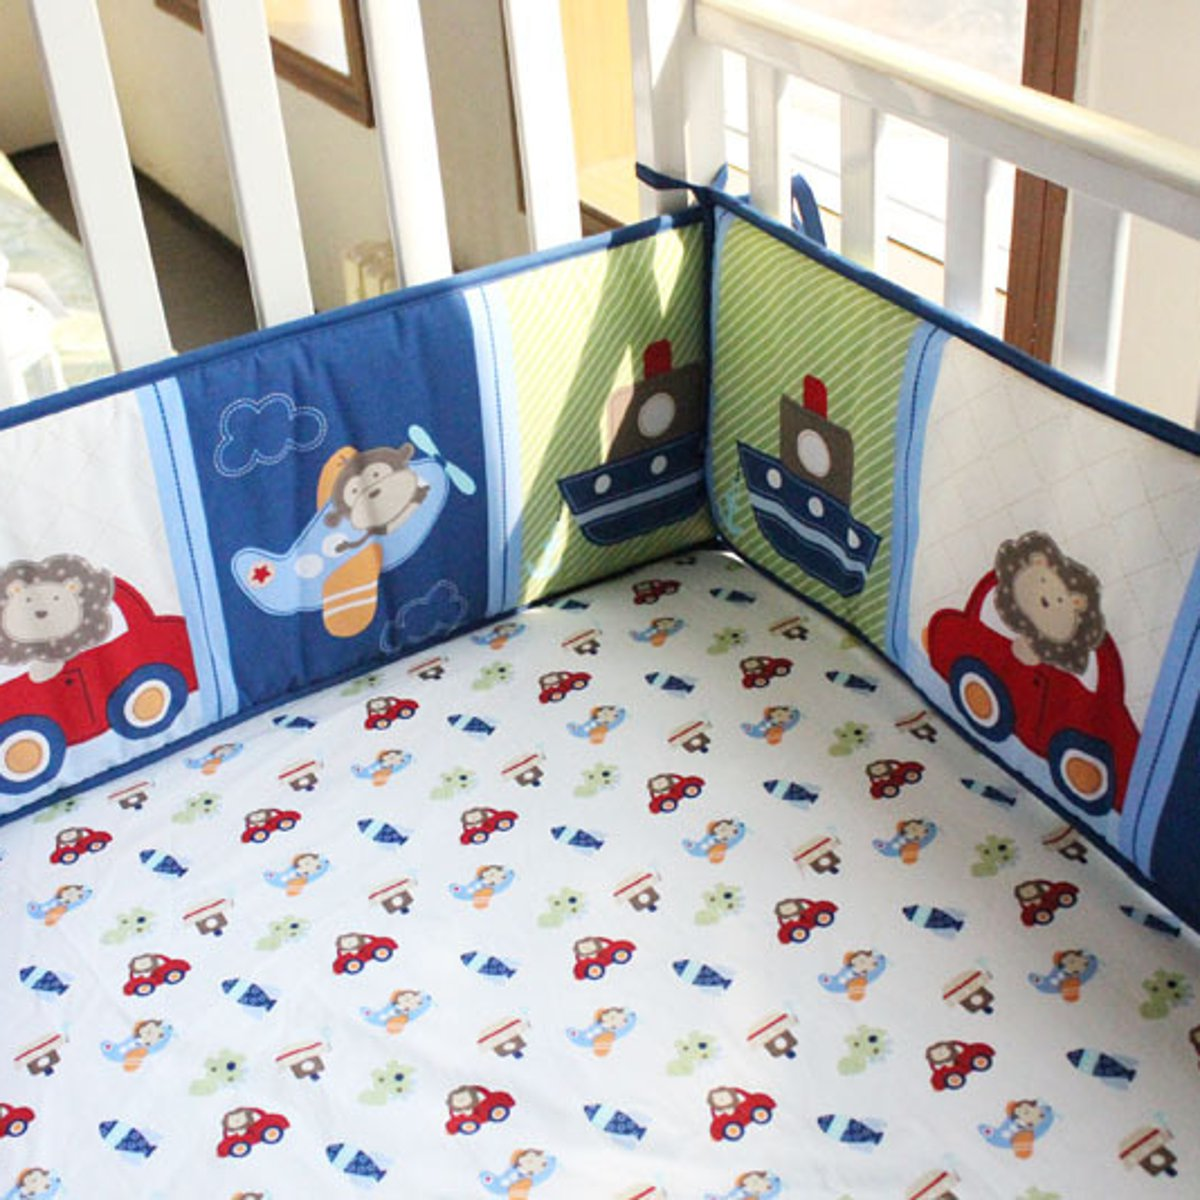 Back To Search Resultsmother & Kids Cute Cartoon Cotton Baby Bumper Bed Crib Bumper For Baby Crib Protector Of Baby Cribs For Newborns Bedding Bumpers 4 Pcs /set High Quality Goods Baby Bedding